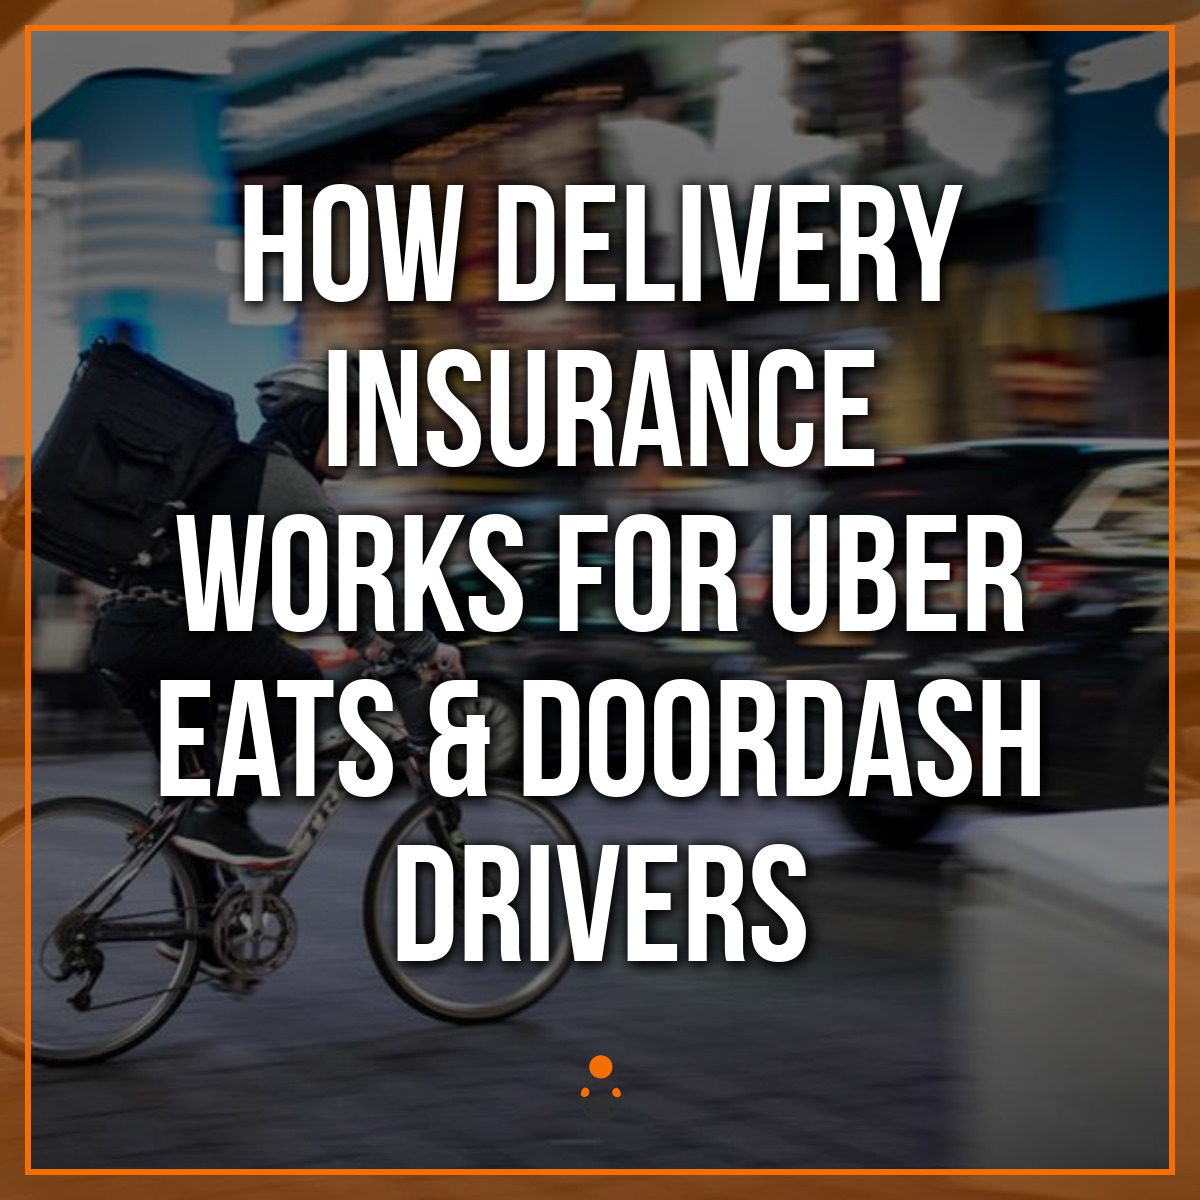 How Delivery Insurance Works For Uber Eats & DoorDash Drivers